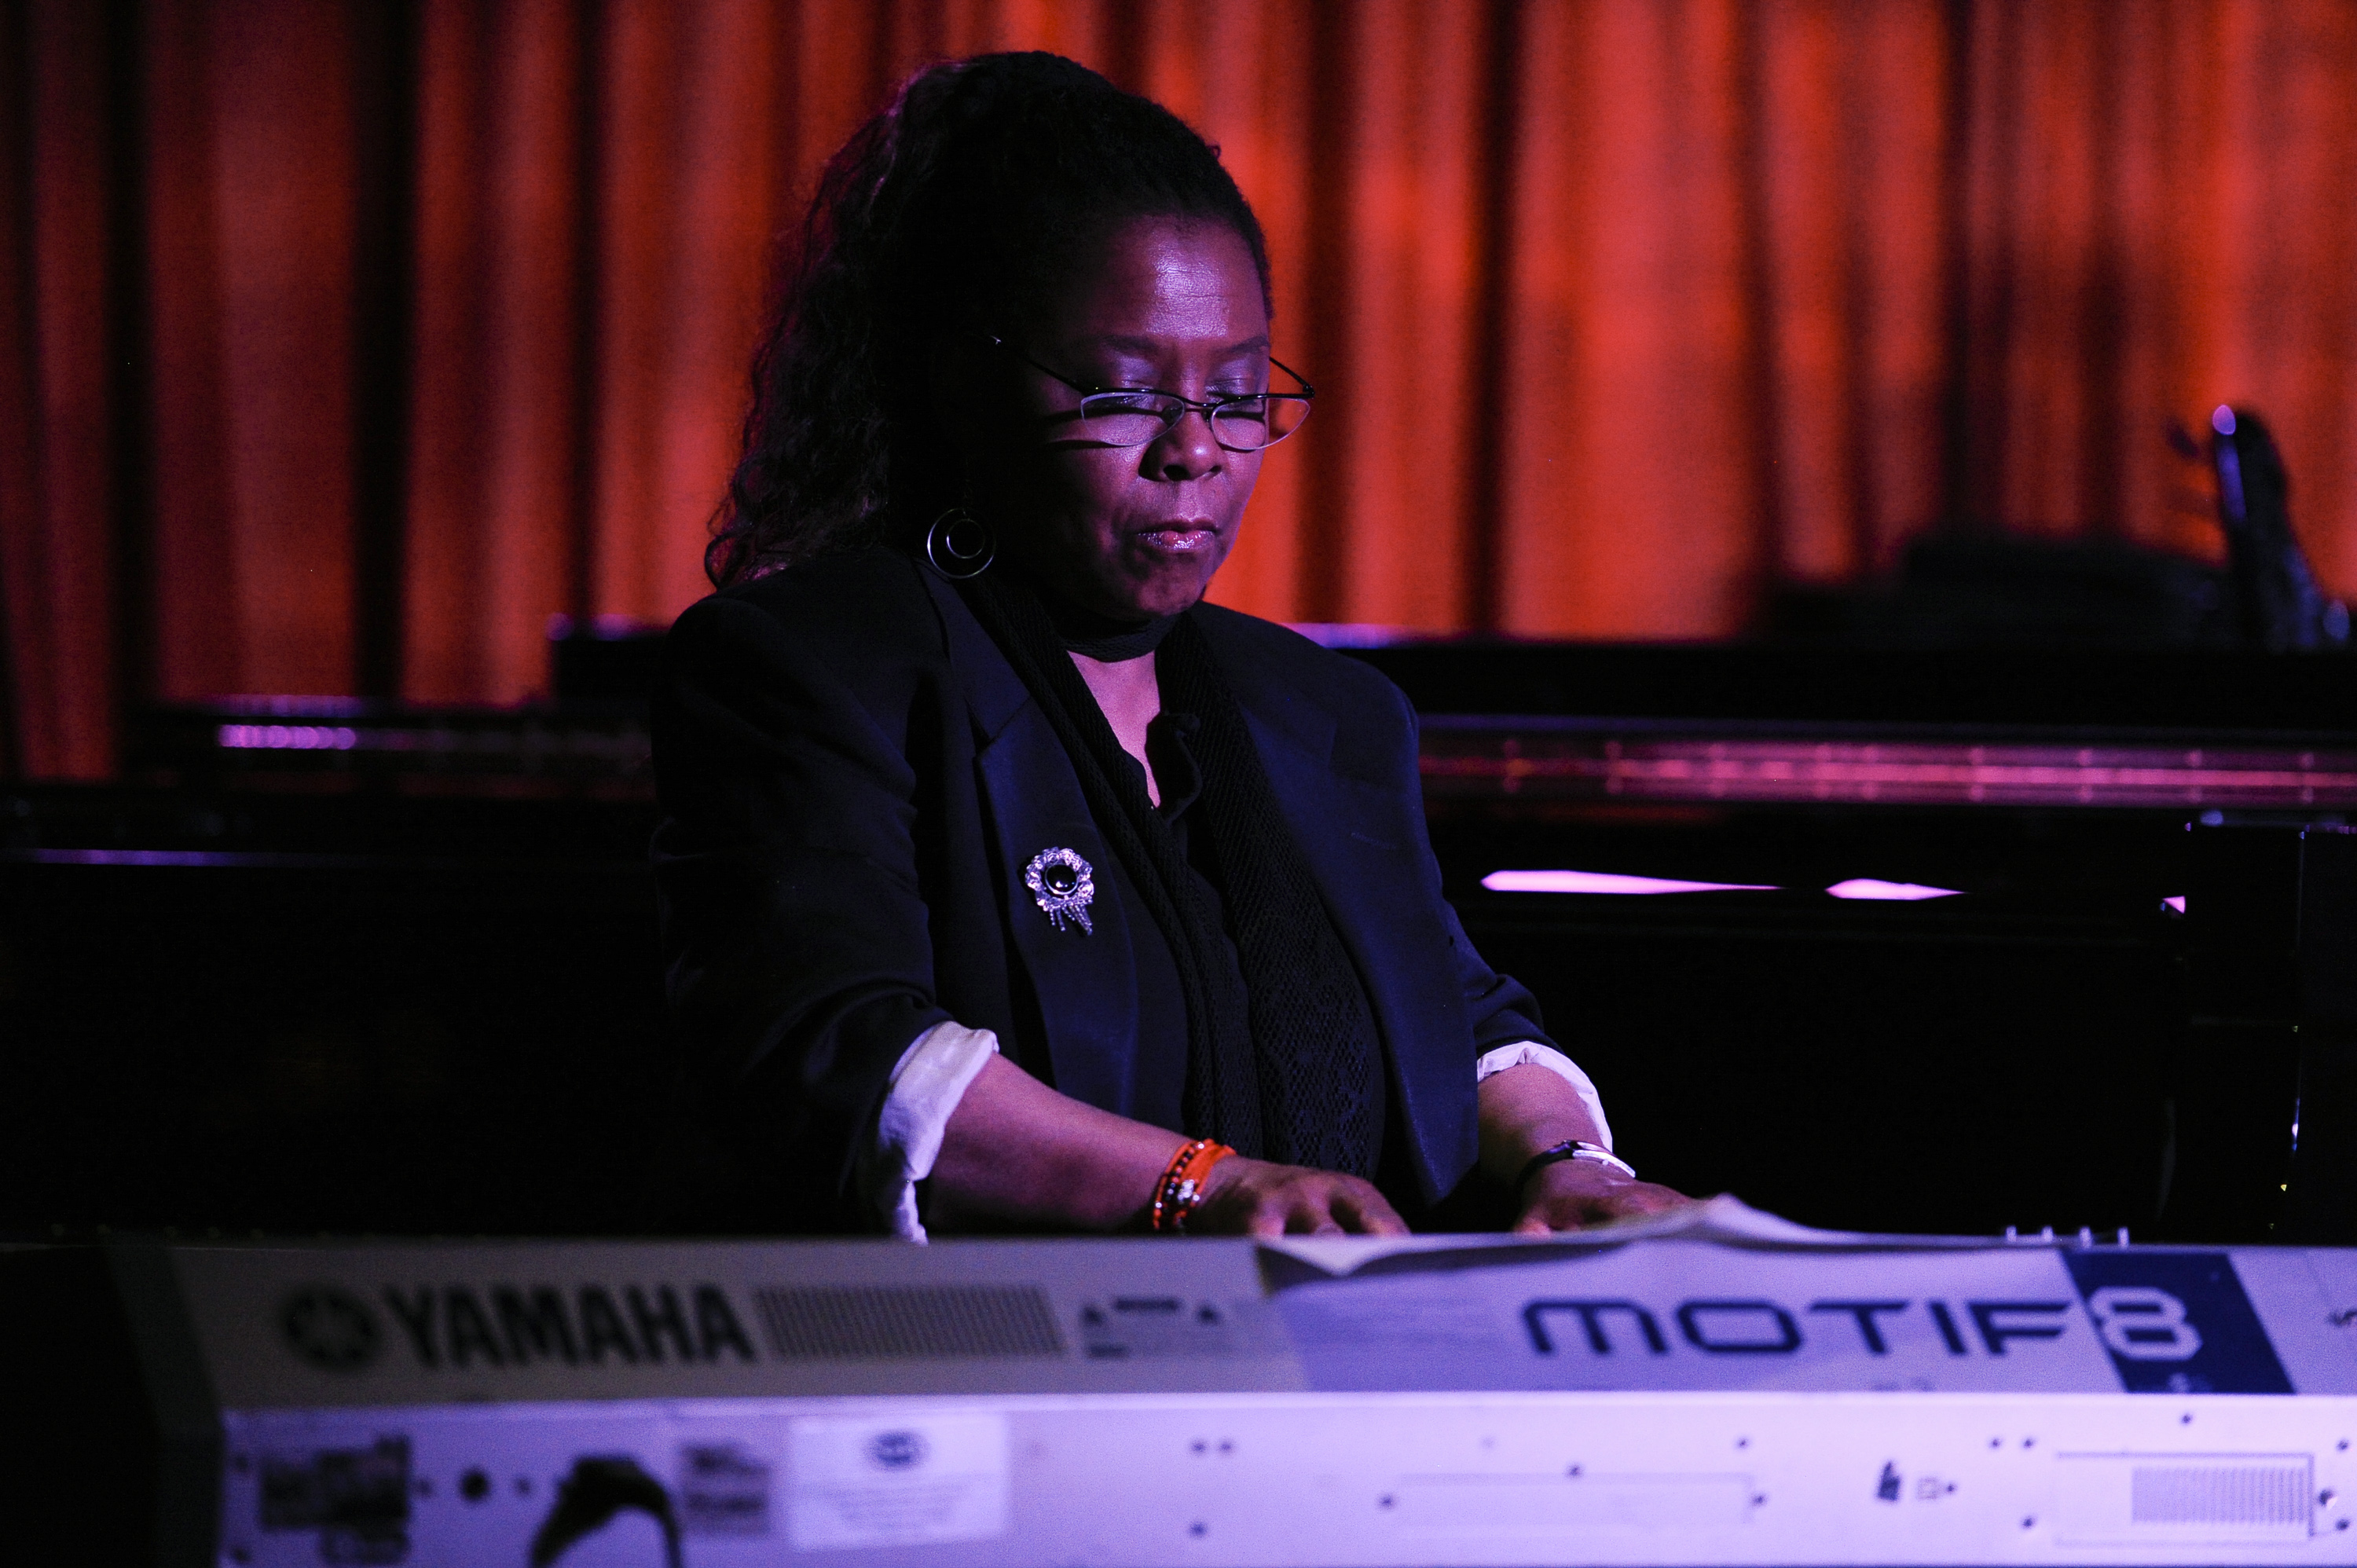 Patrice Rushen on Piano with Kaylene Peoples and Bunny Brunel Dual cd Release